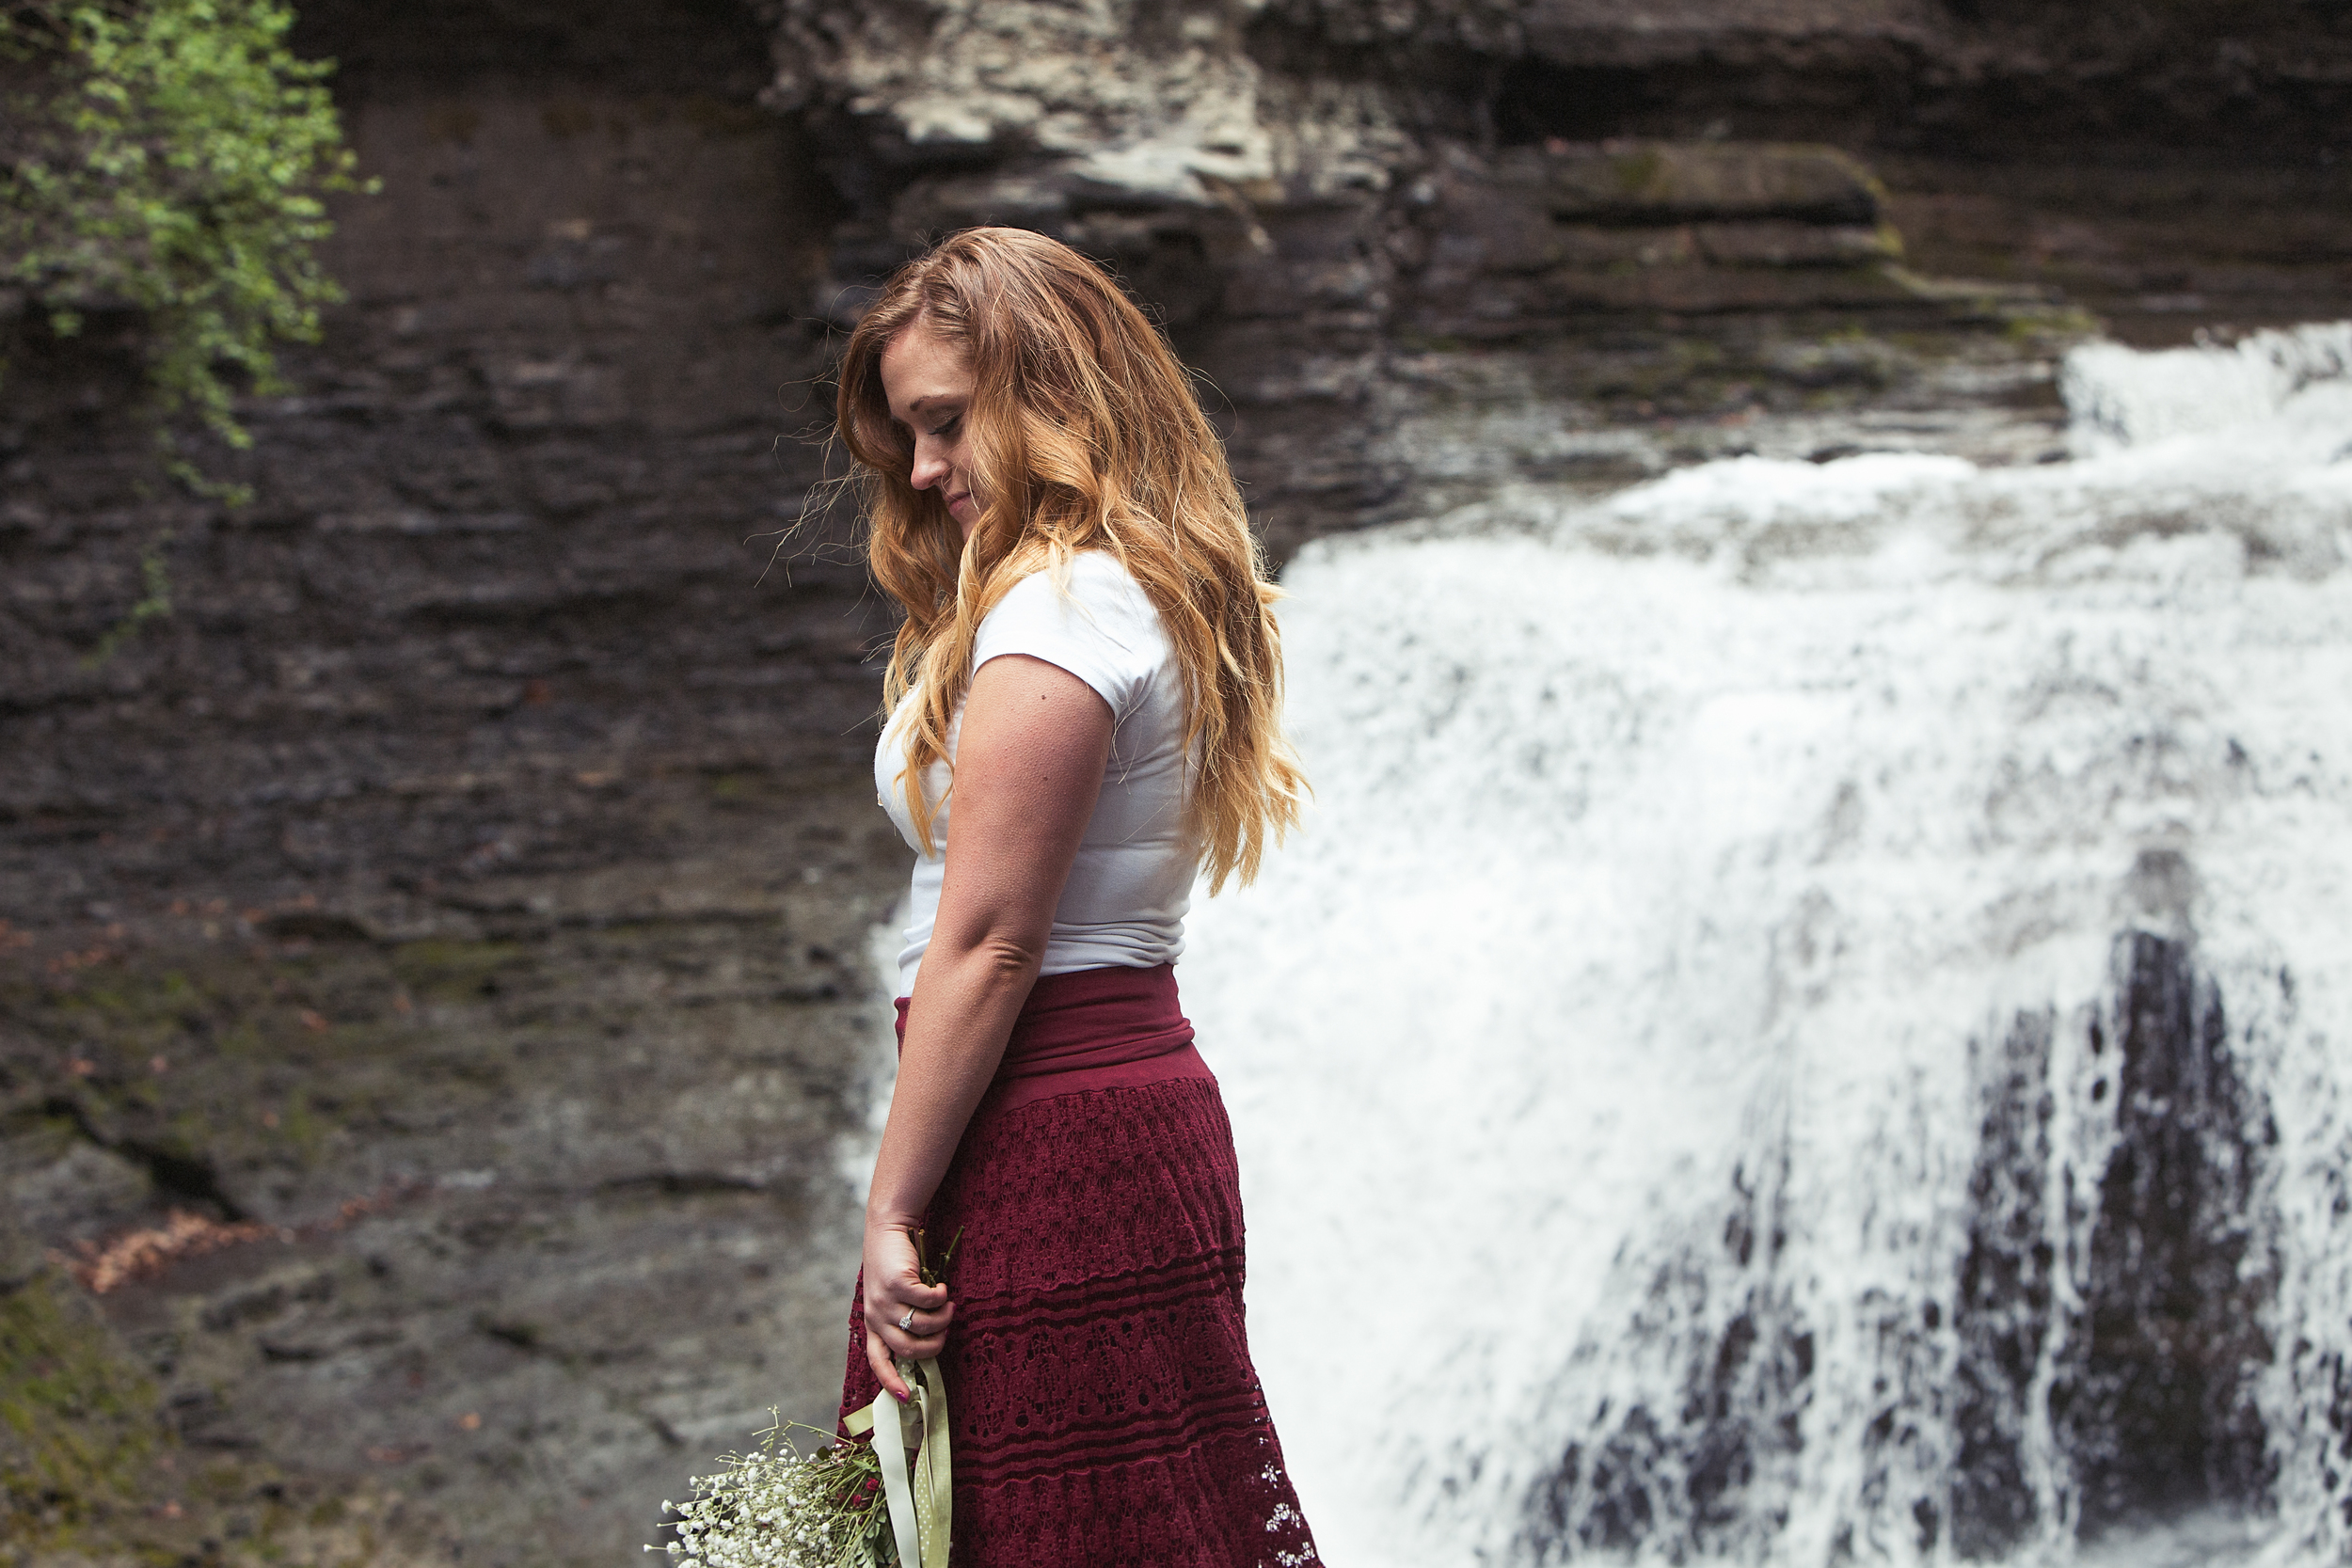 A_J_Engagement_Session_Waterfall_Nick_Natasha_Photography-50.jpg